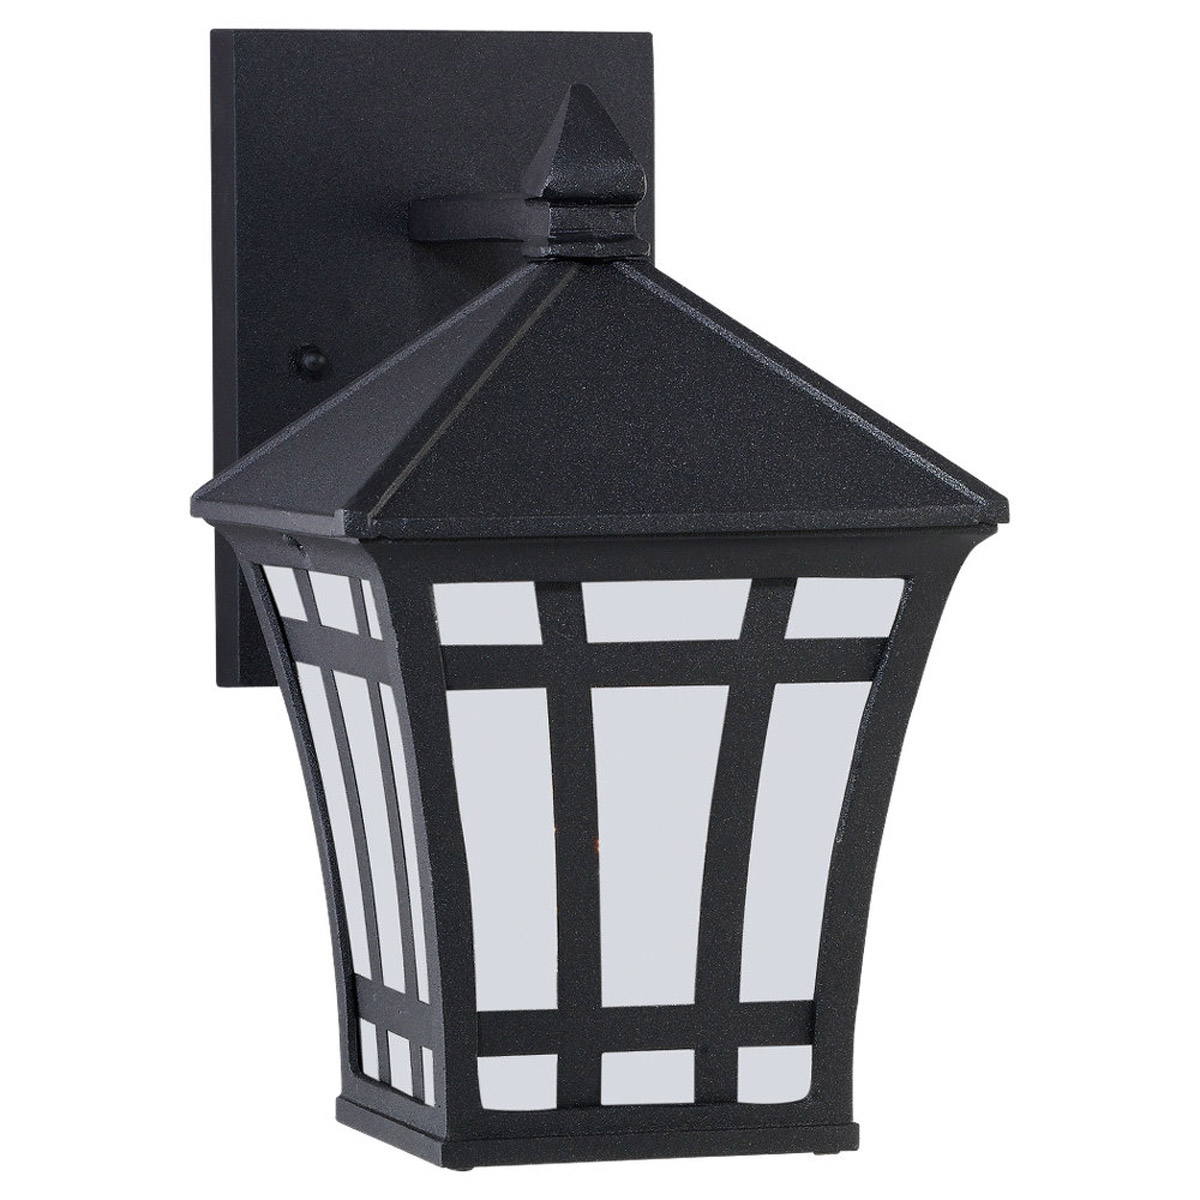 Sea Gull Lighting Herrington 1 Light Outdoor Wall Lantern in Black 89131PBLE-12 photo